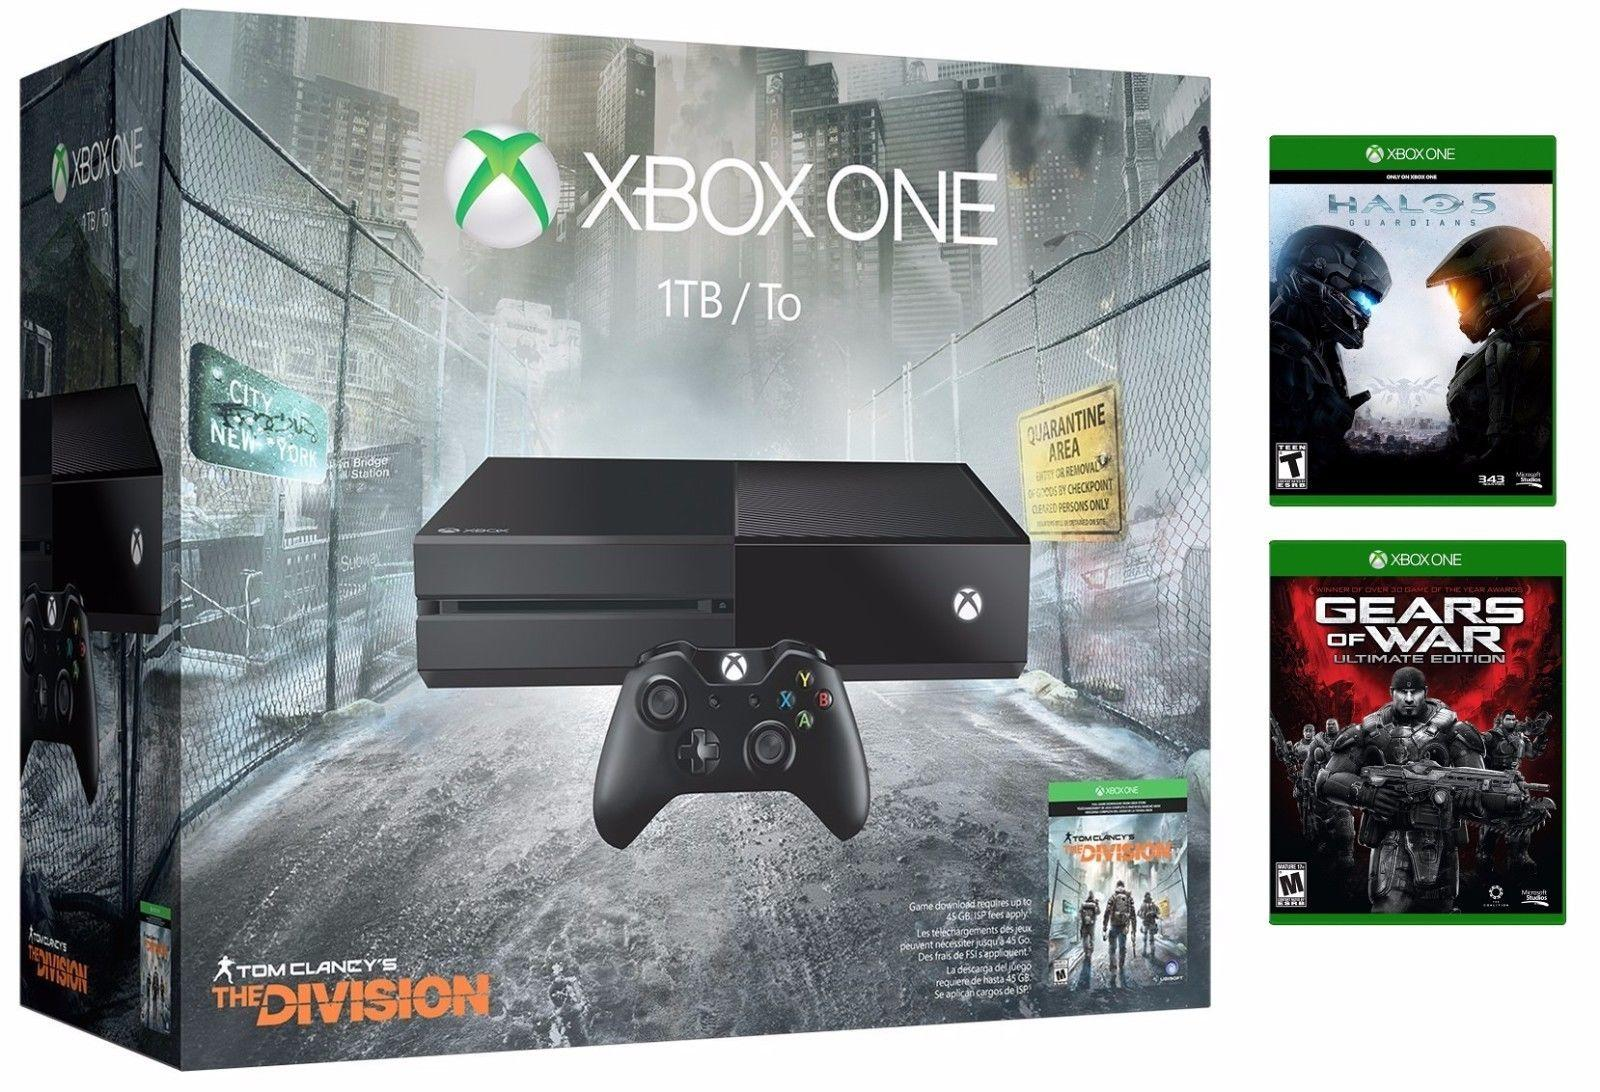 Xbox One 1TB The Division bundle w/ Halo 5 & Gears of War: Ultimate Edition